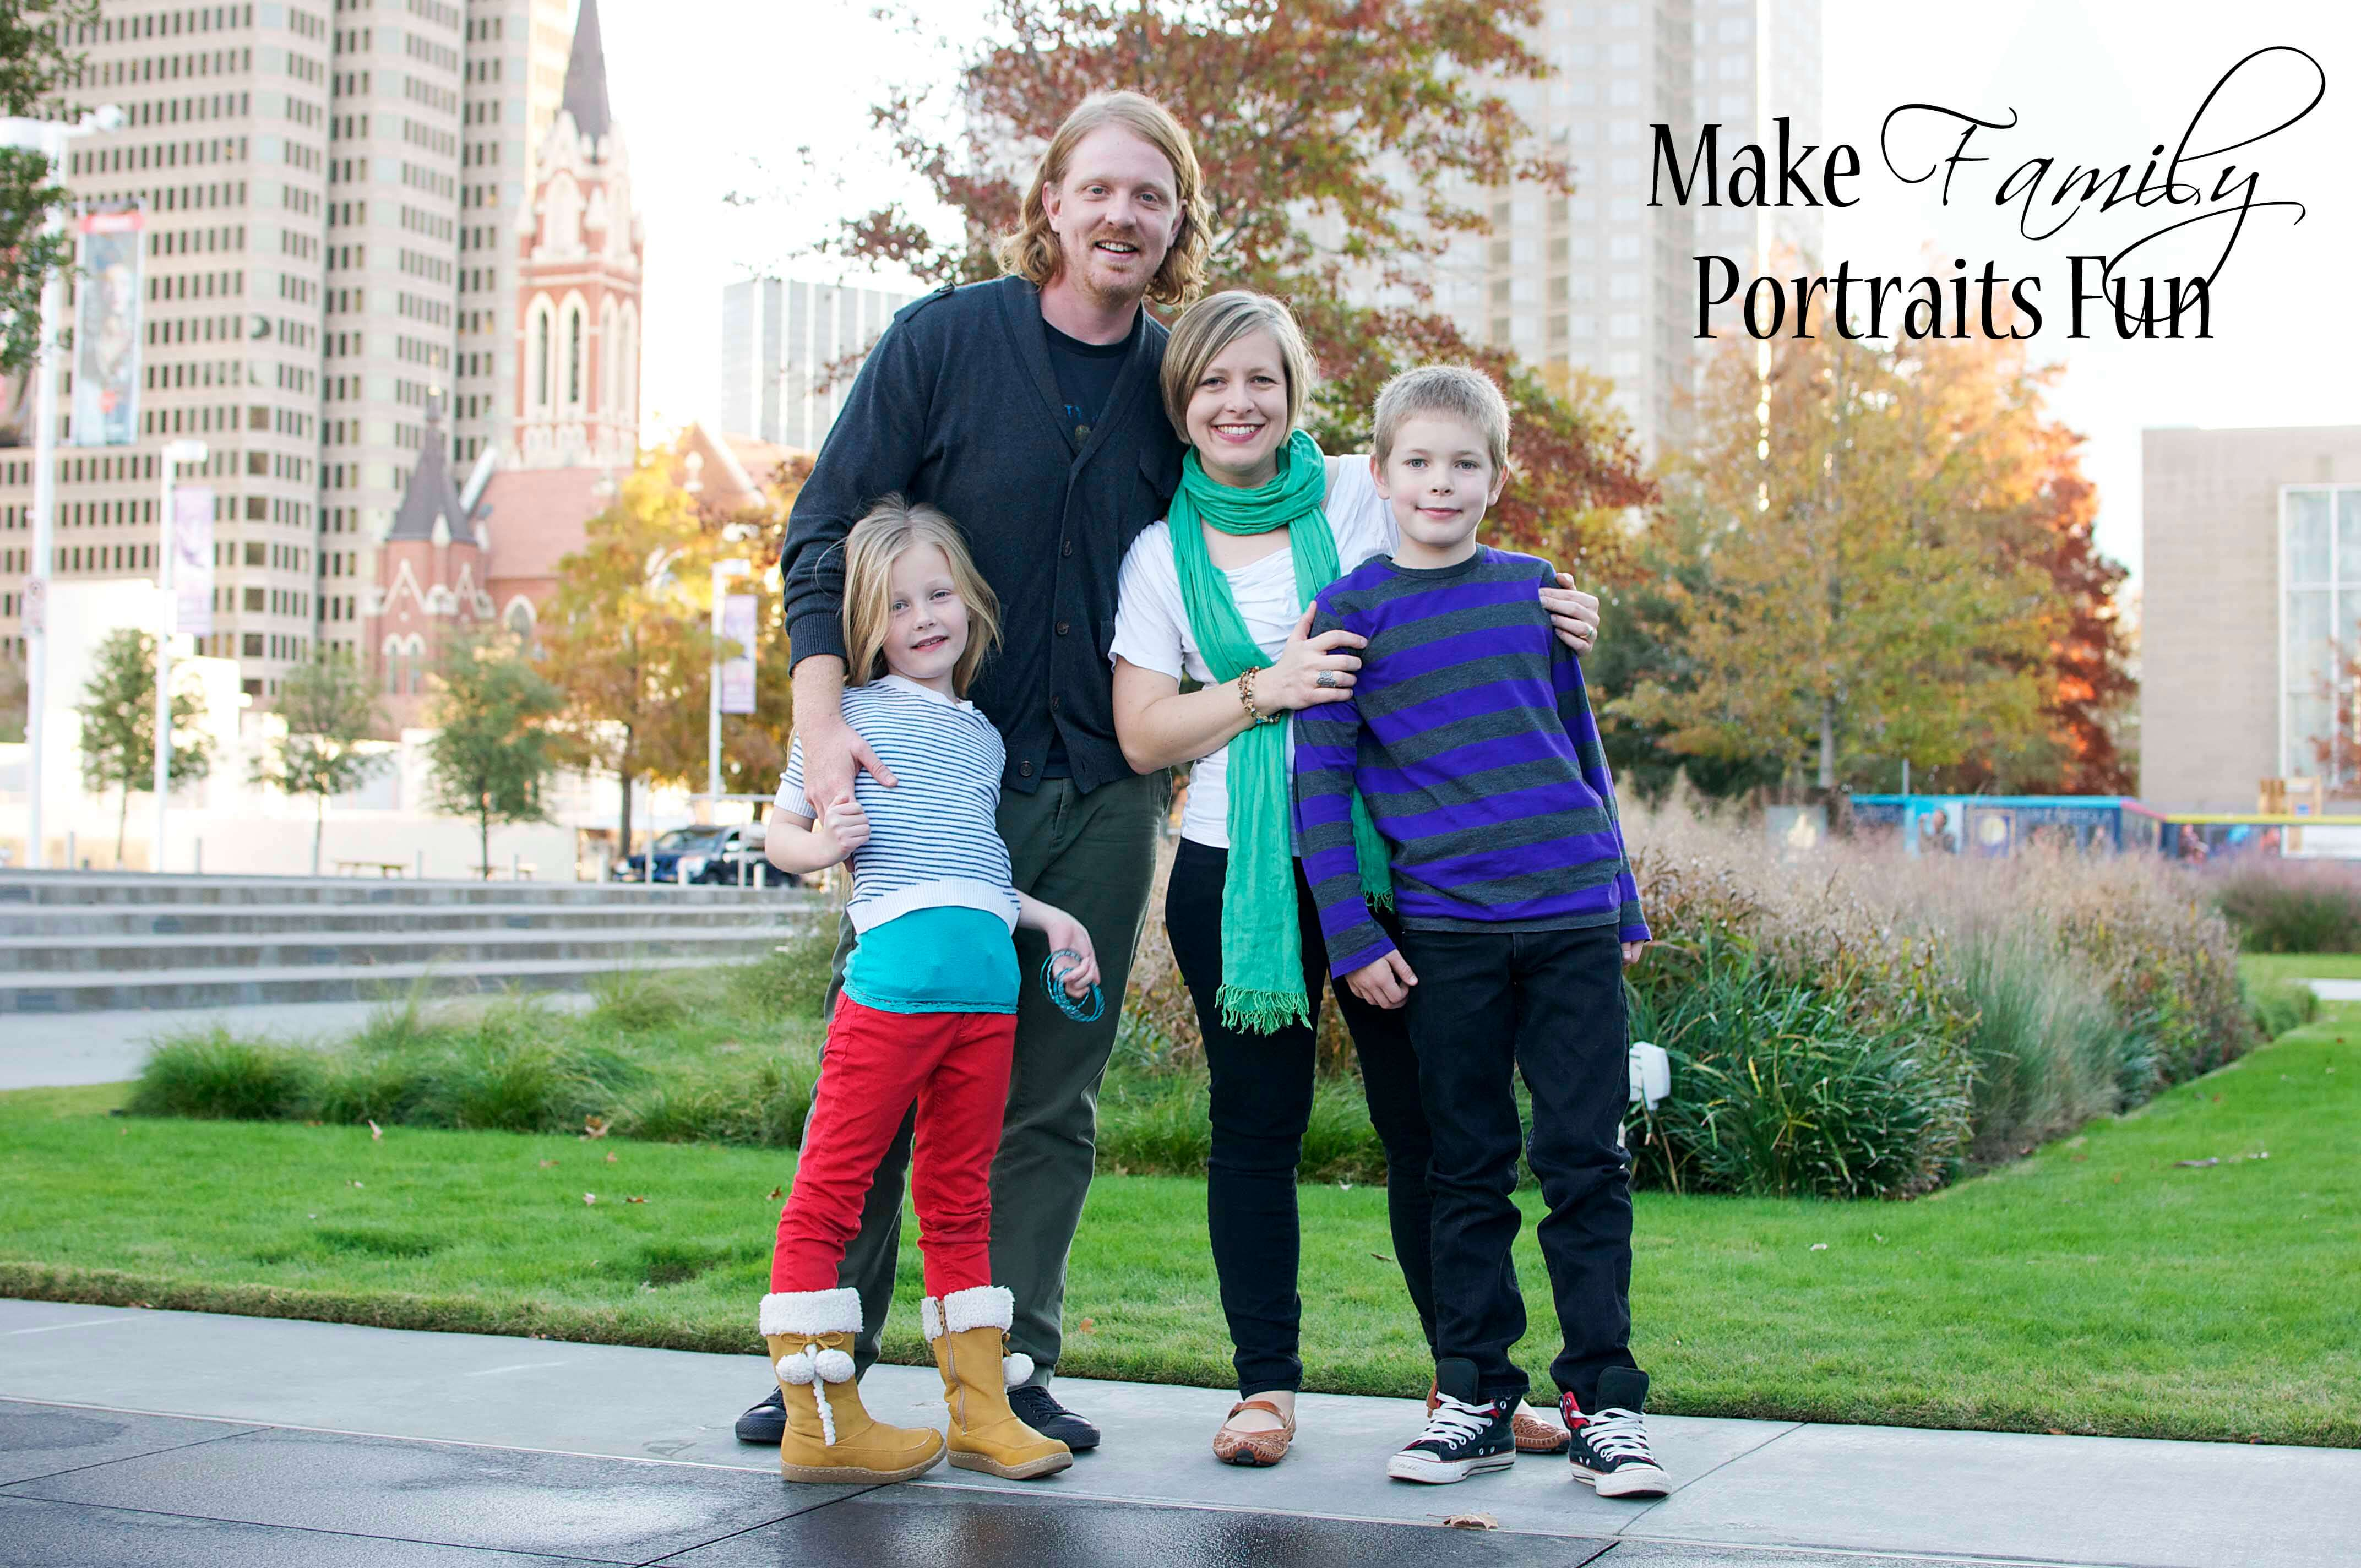 Make Family Portraits Fun